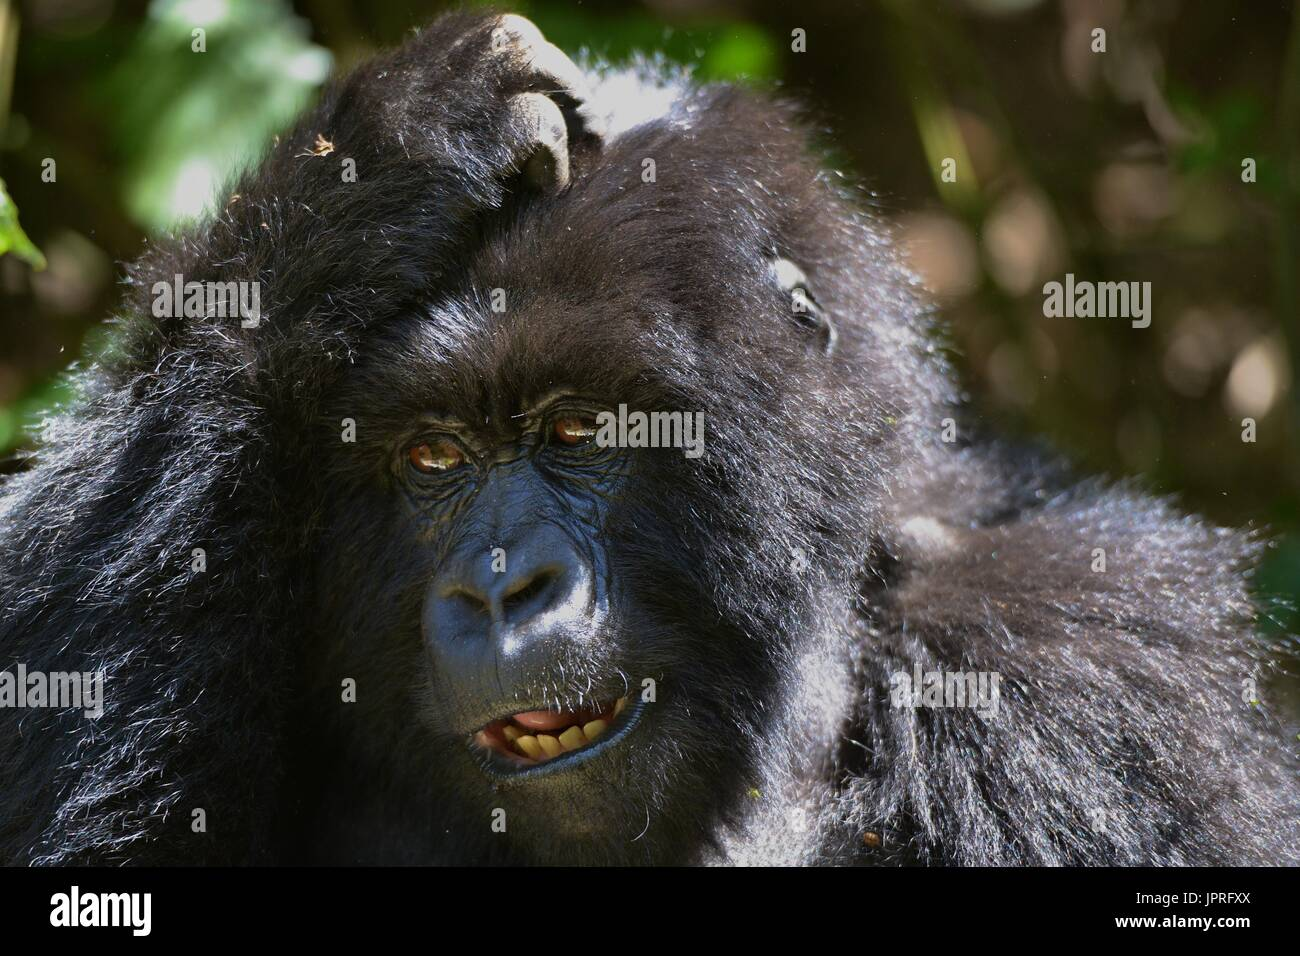 Silverback gorillas and family in the Virunga Mountains of Northern Rwanda, Africa. - Stock Image